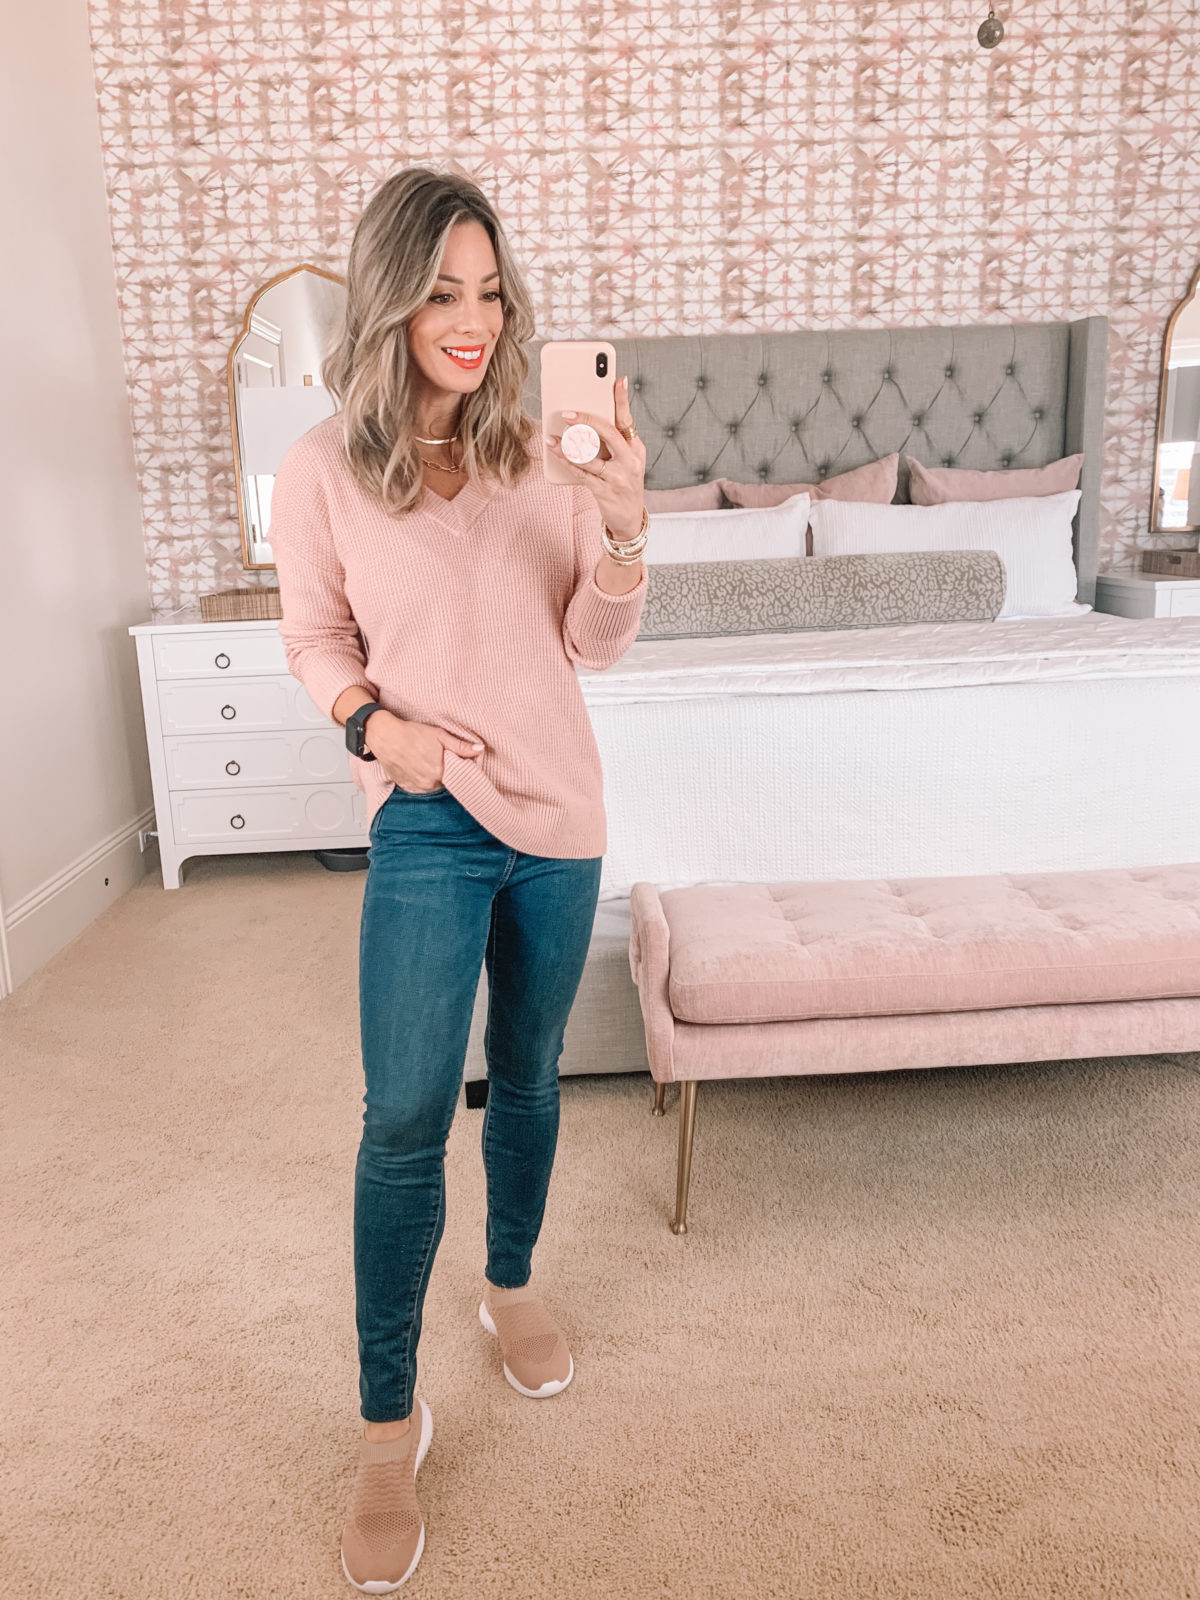 Amazon Fashion Faves, Pink V Neck Sweater, Jeans, Slide on Sneakers